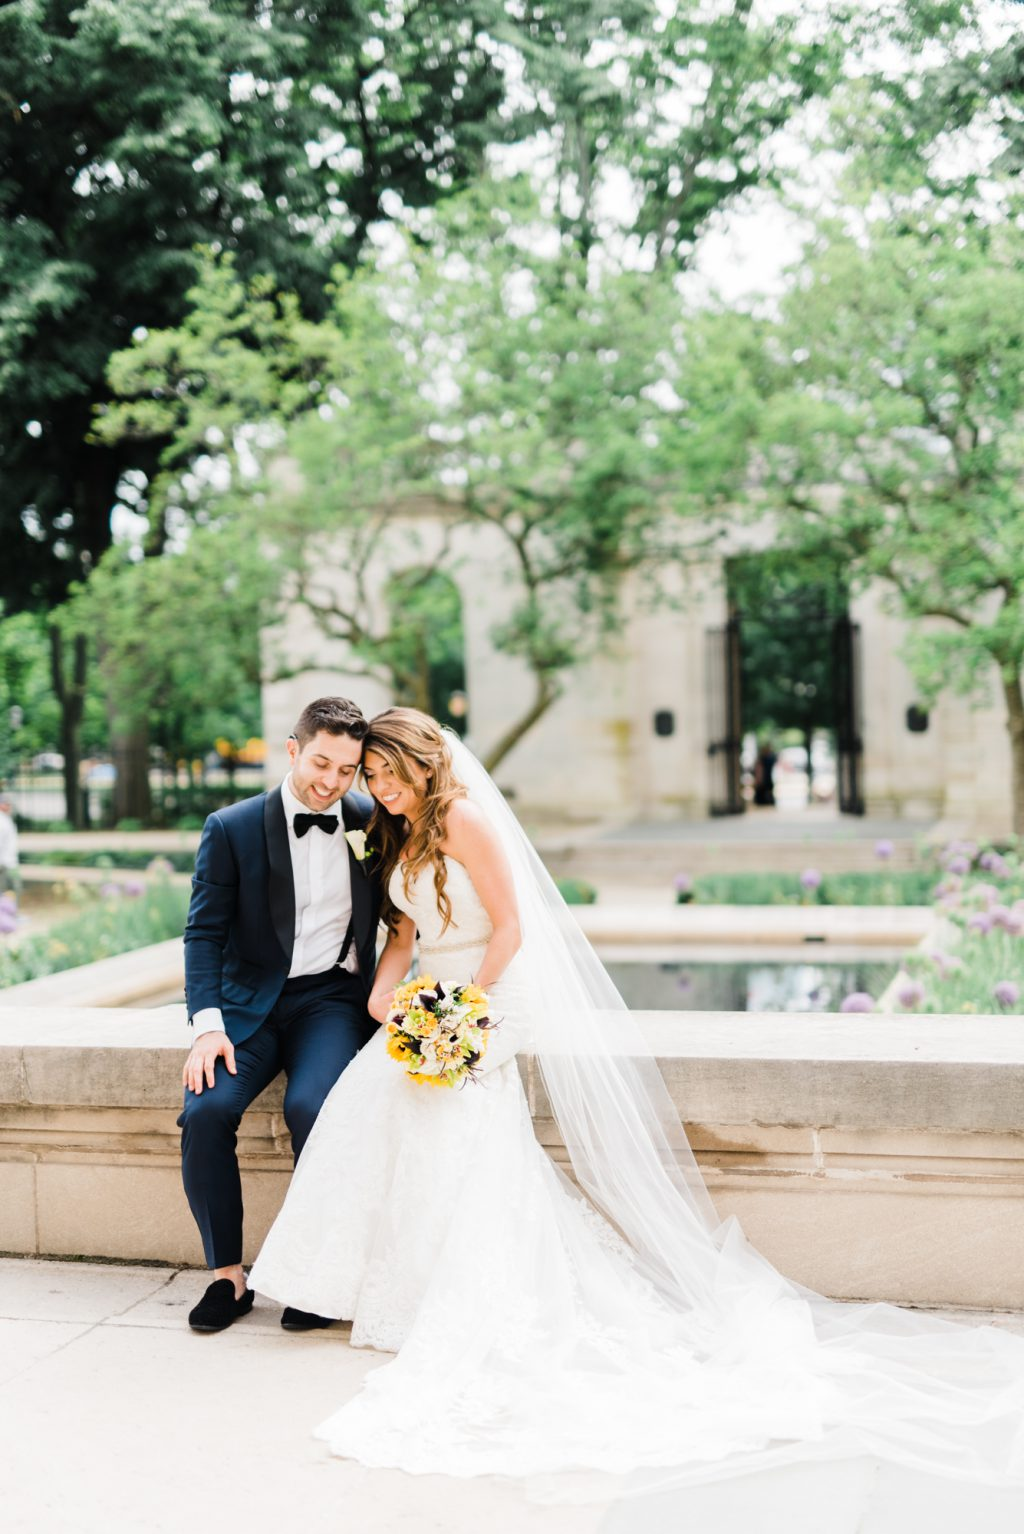 haleyrichterphoto-front-and-palmer-spring-wedding-rodin-museum-loews-hotel-philadelphia-090